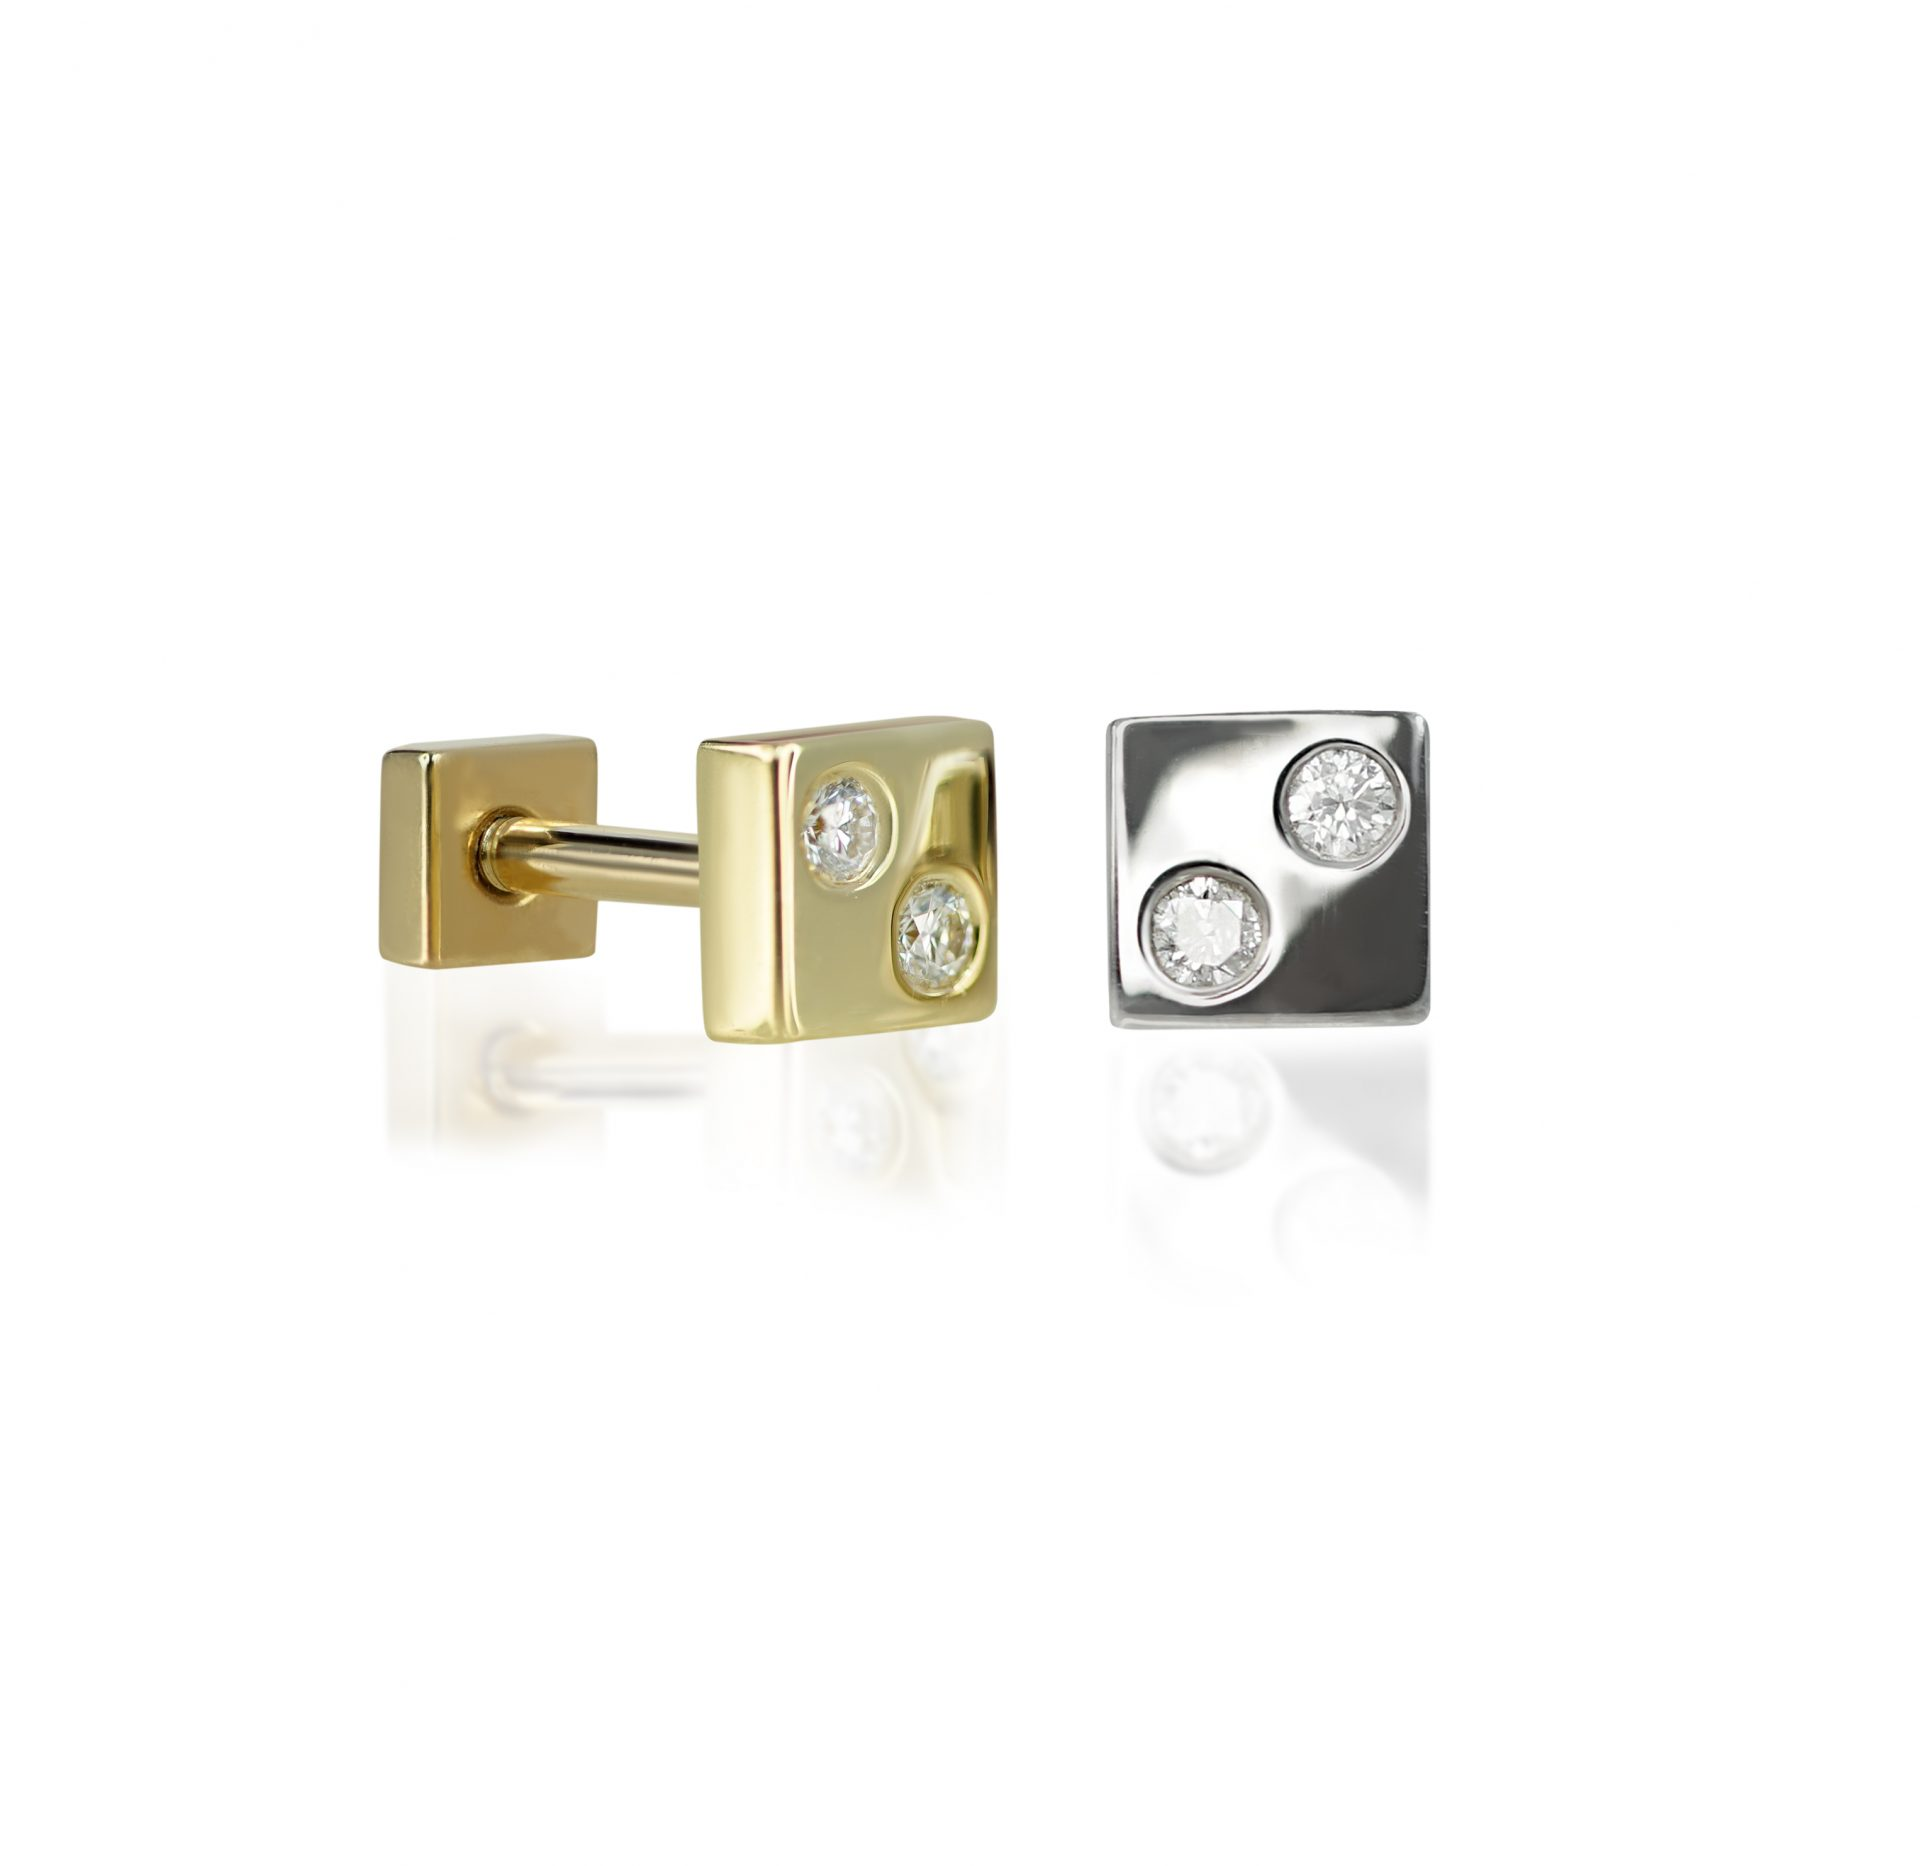 square-18k-solid-gold-diamond-piercing-helix-tragus-cartilage-lobe-stud-lena-cohen